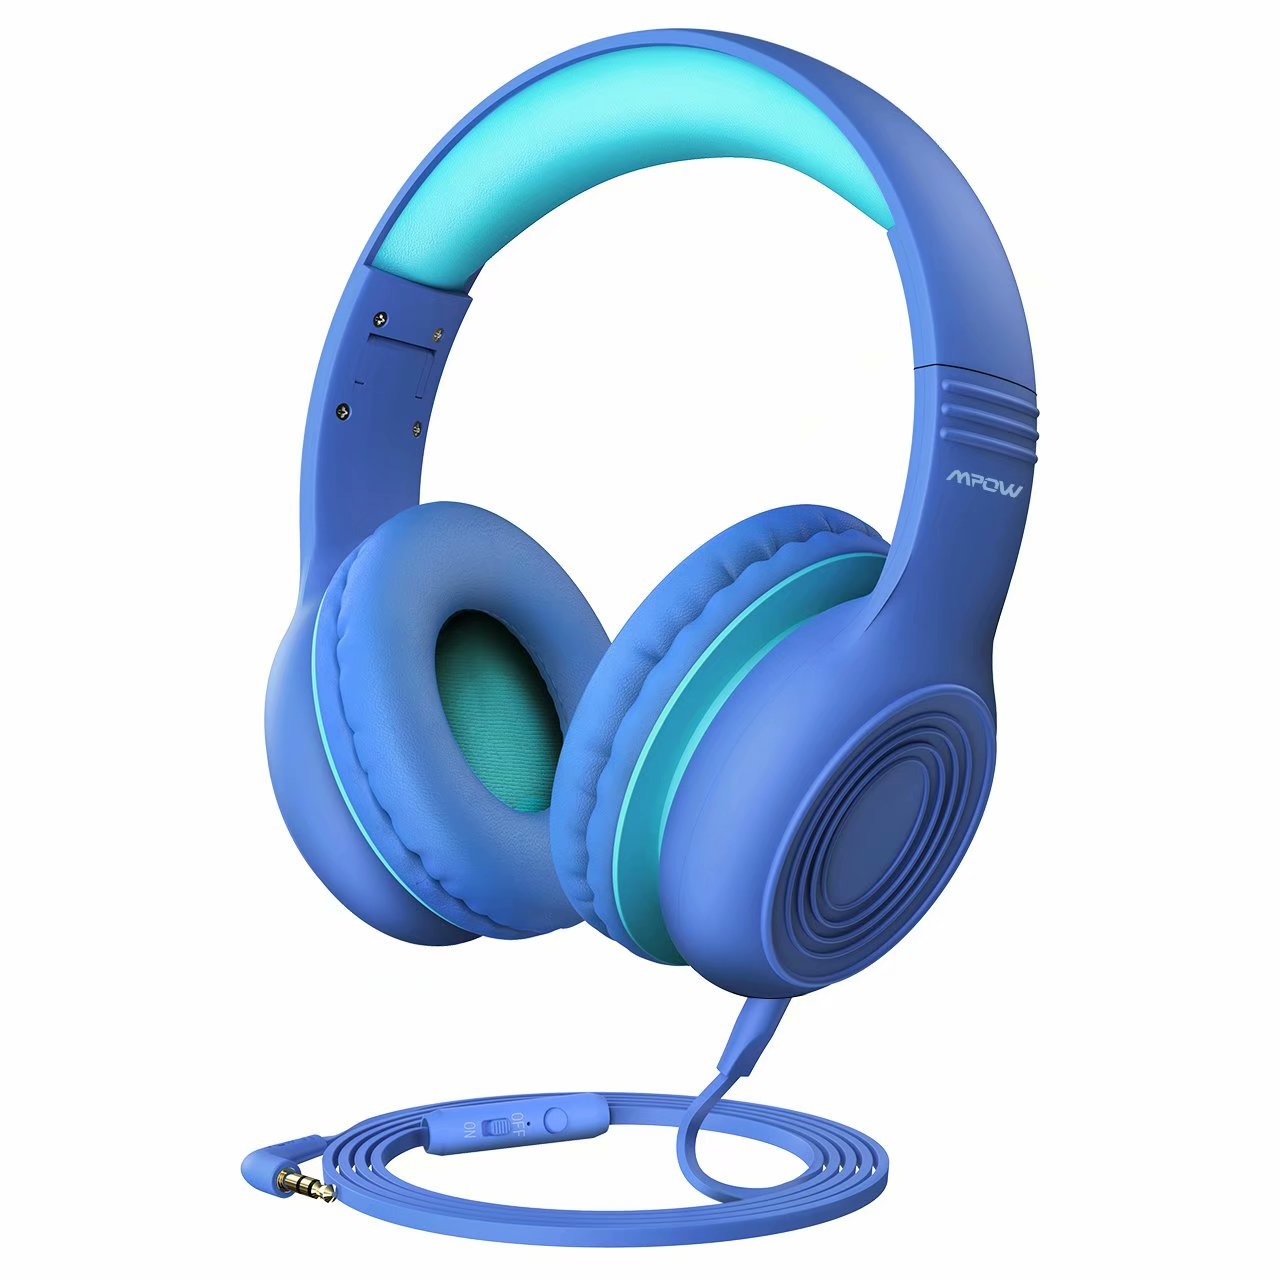 Mpow CH6 Kids Headphones for Baby to Teen, Switchable Volume Limited Safe Headphones w/Sharing Function for Children Boys Girls, Foldable Over-Ear/On-Ear Headset w/Mic for School/PC/Cellphone-Blue